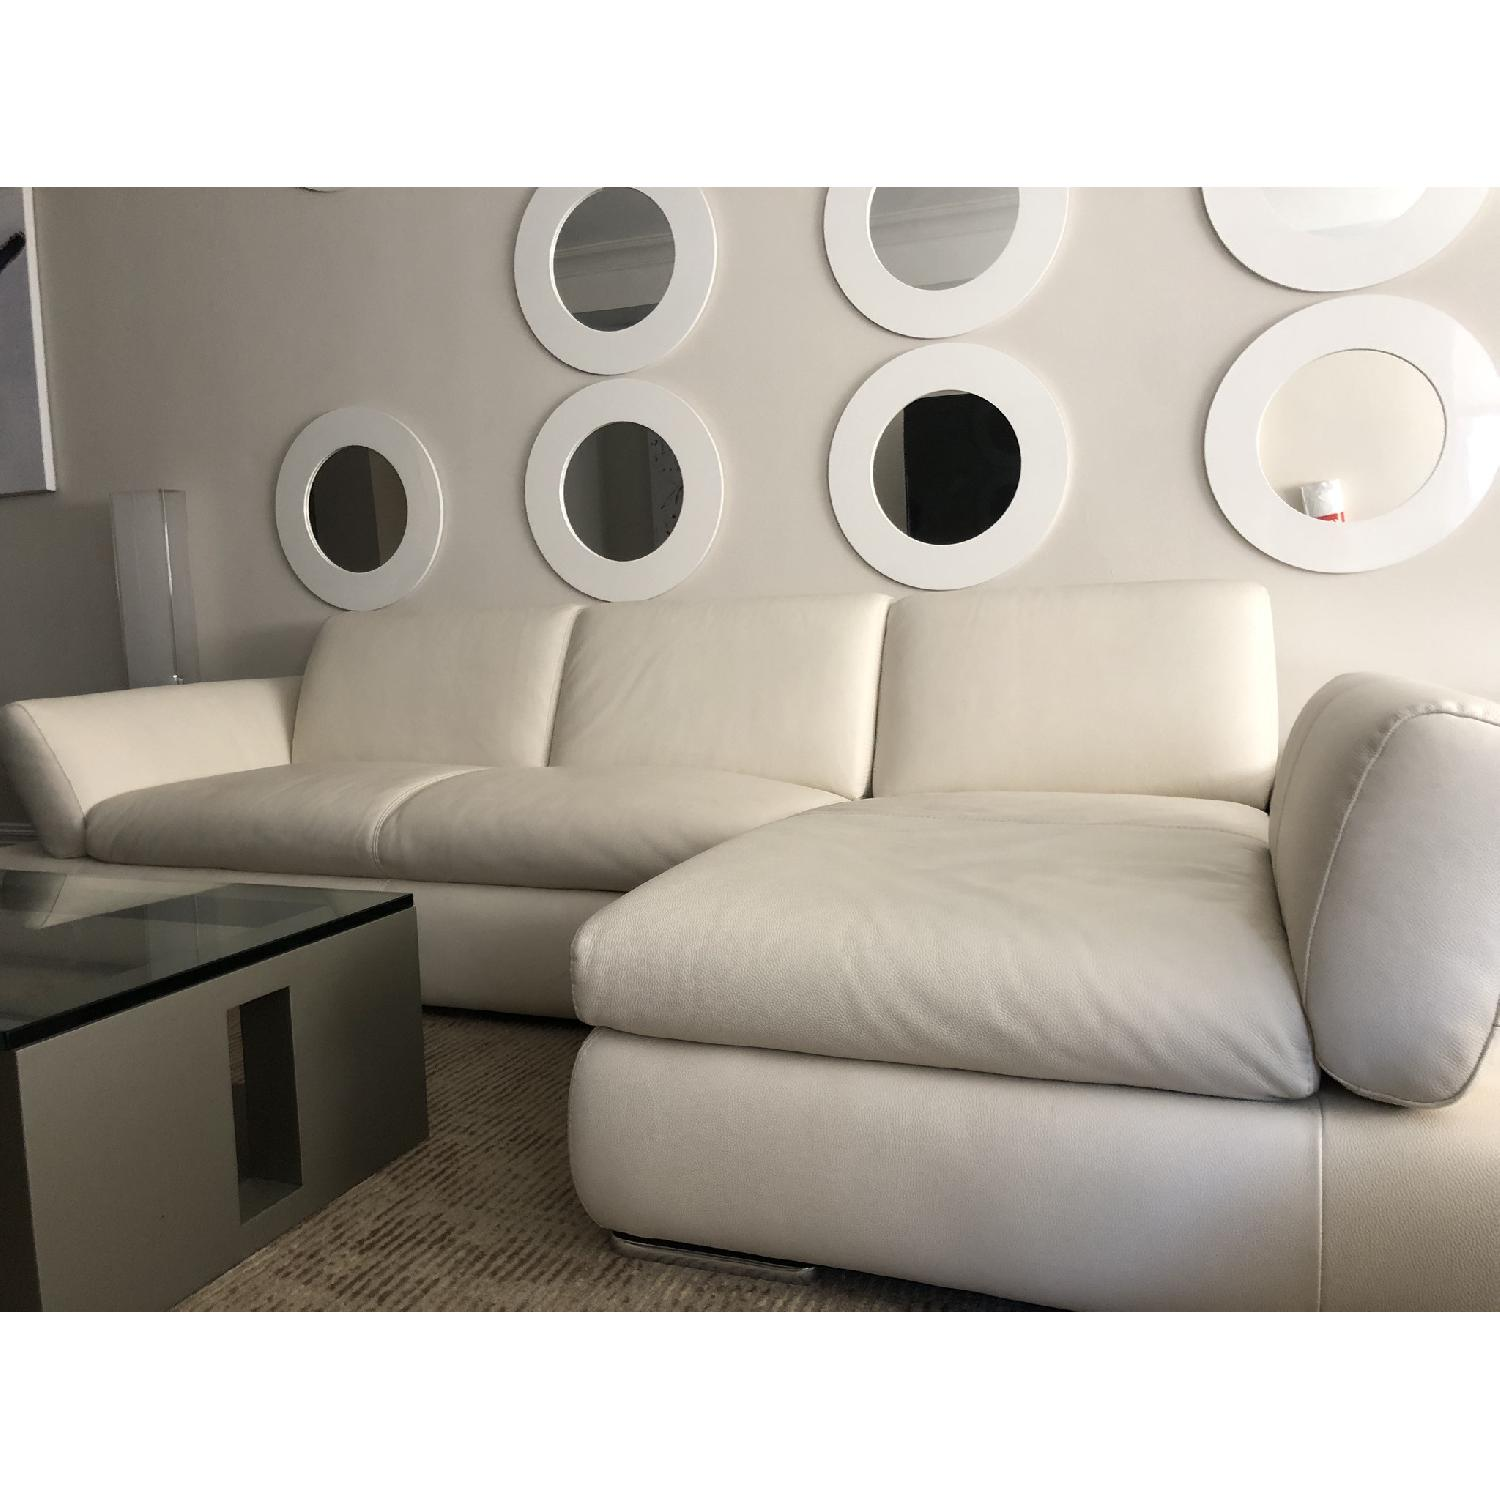 Nicoletti Home White Leather 2-Piece Sectional Sofa - image-2